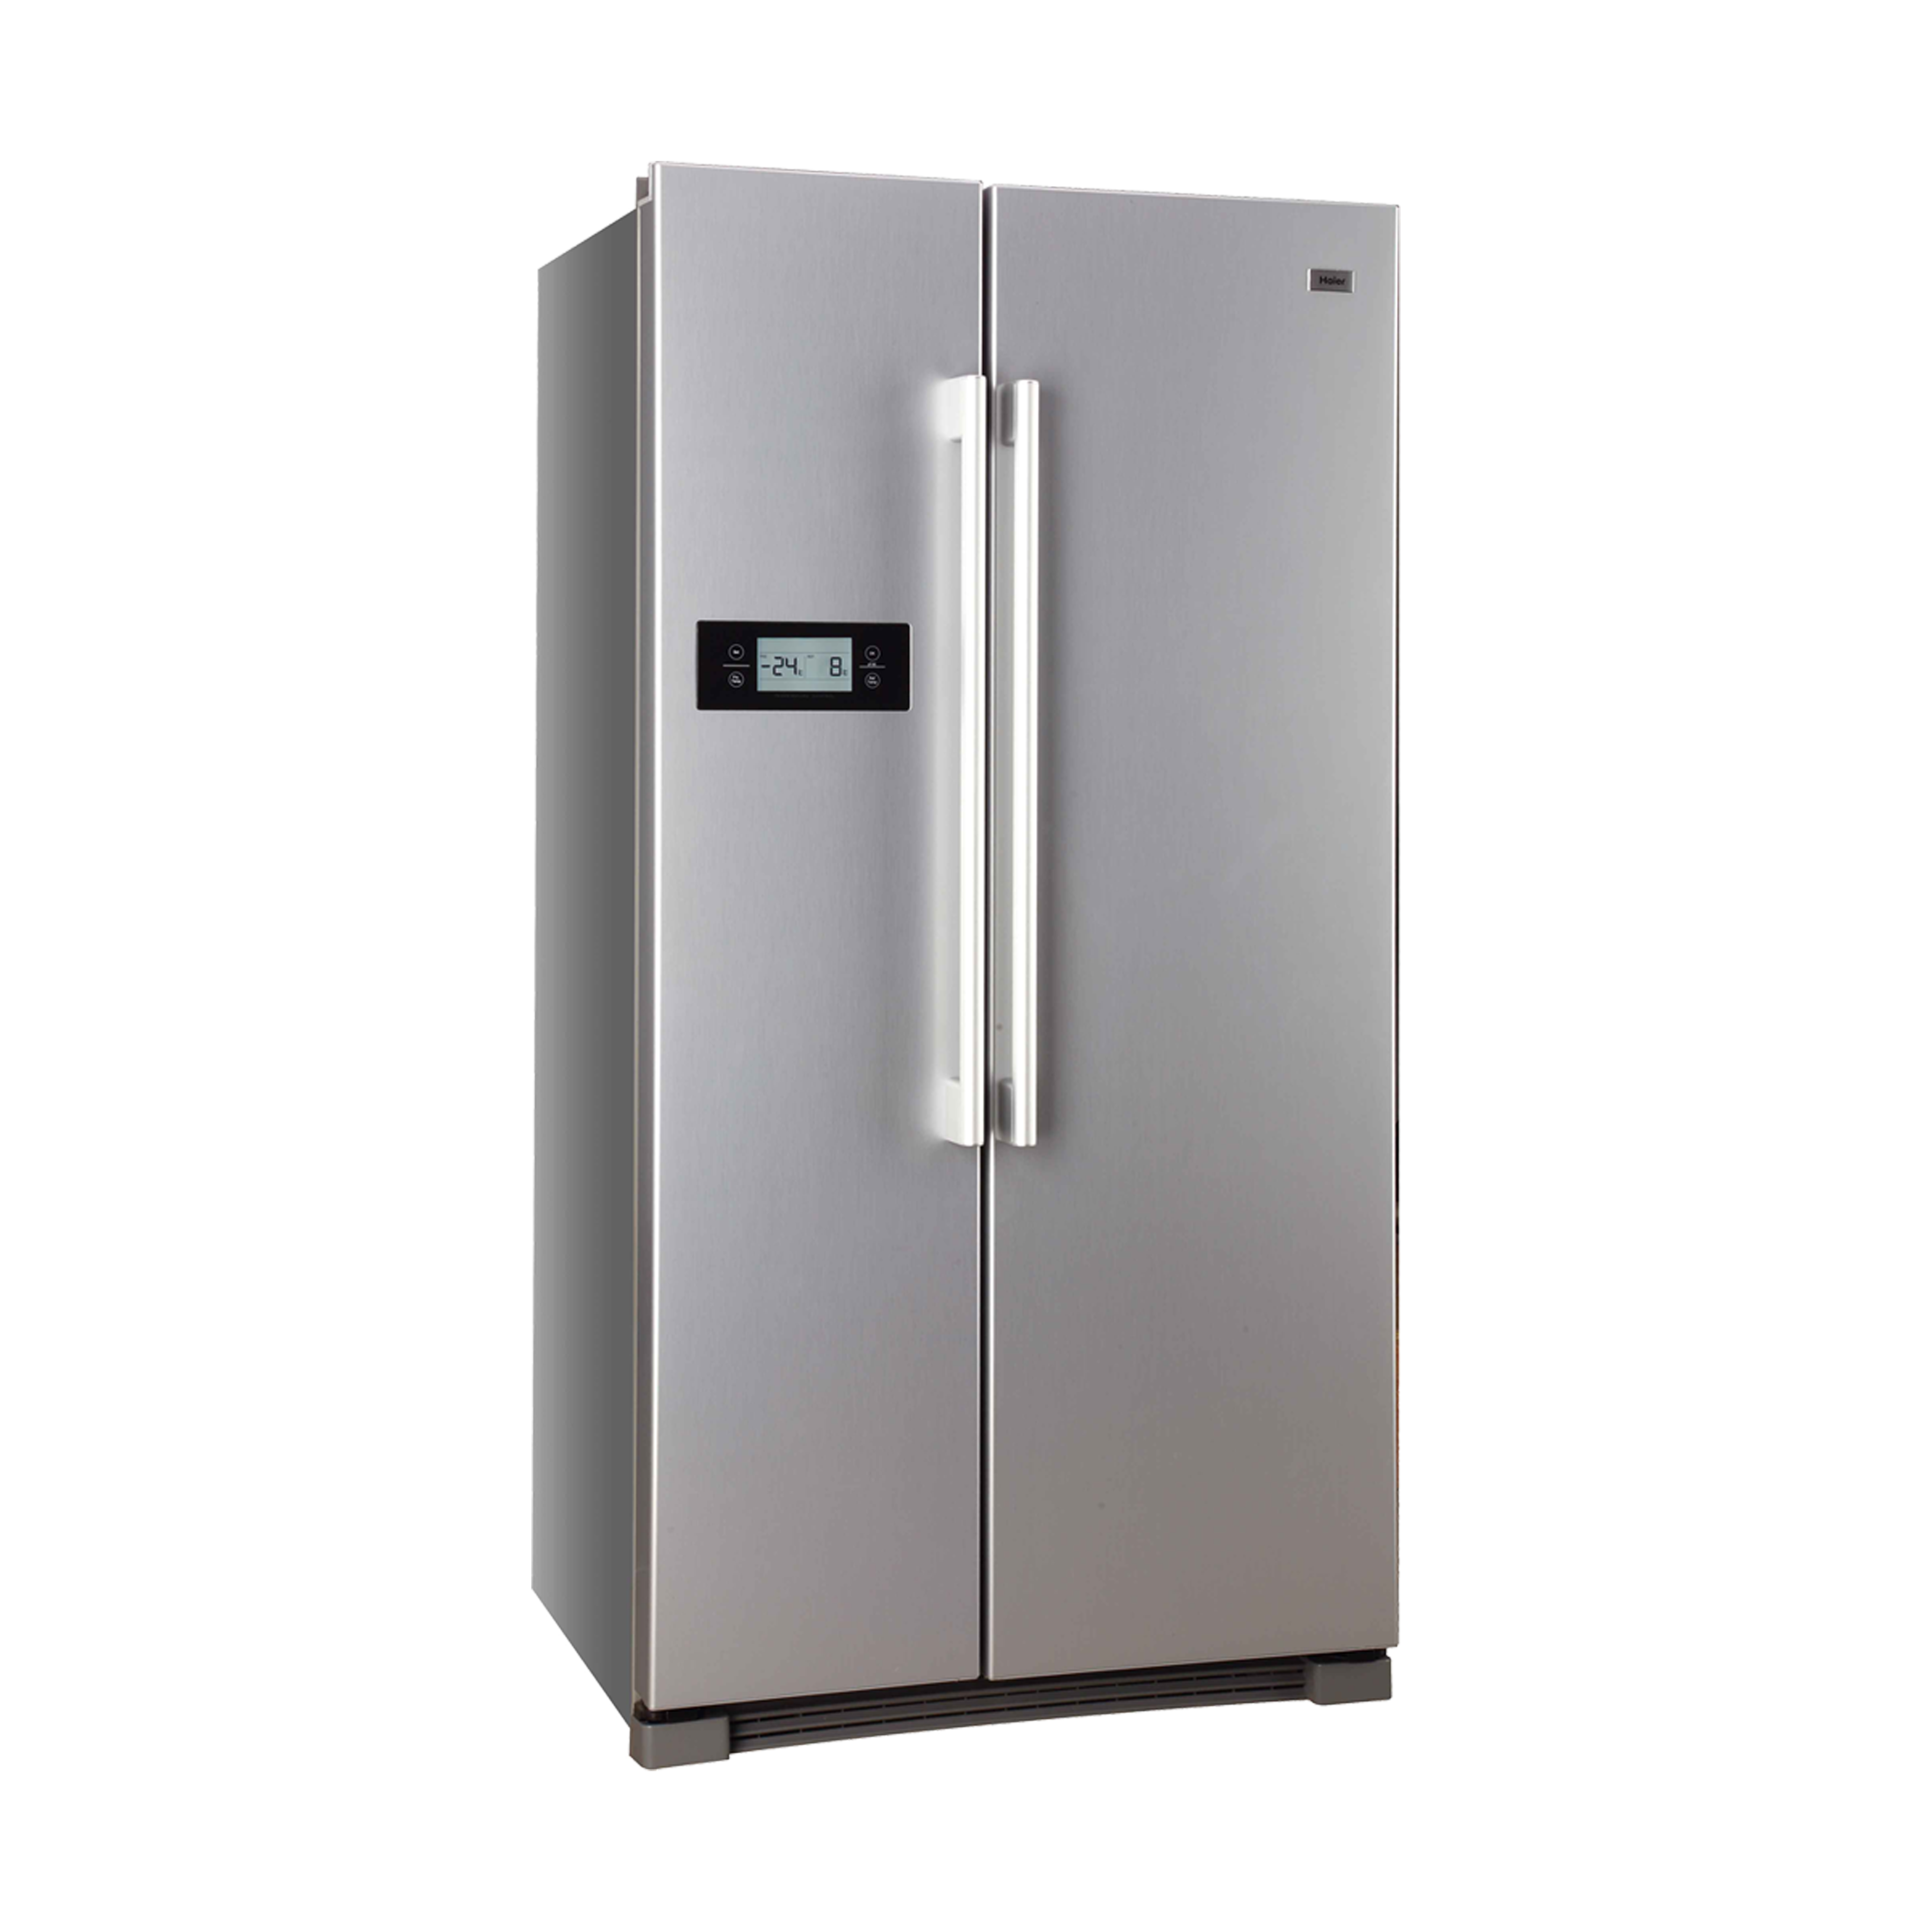 haier refrigerator reviews. haier refrigerator reviews h